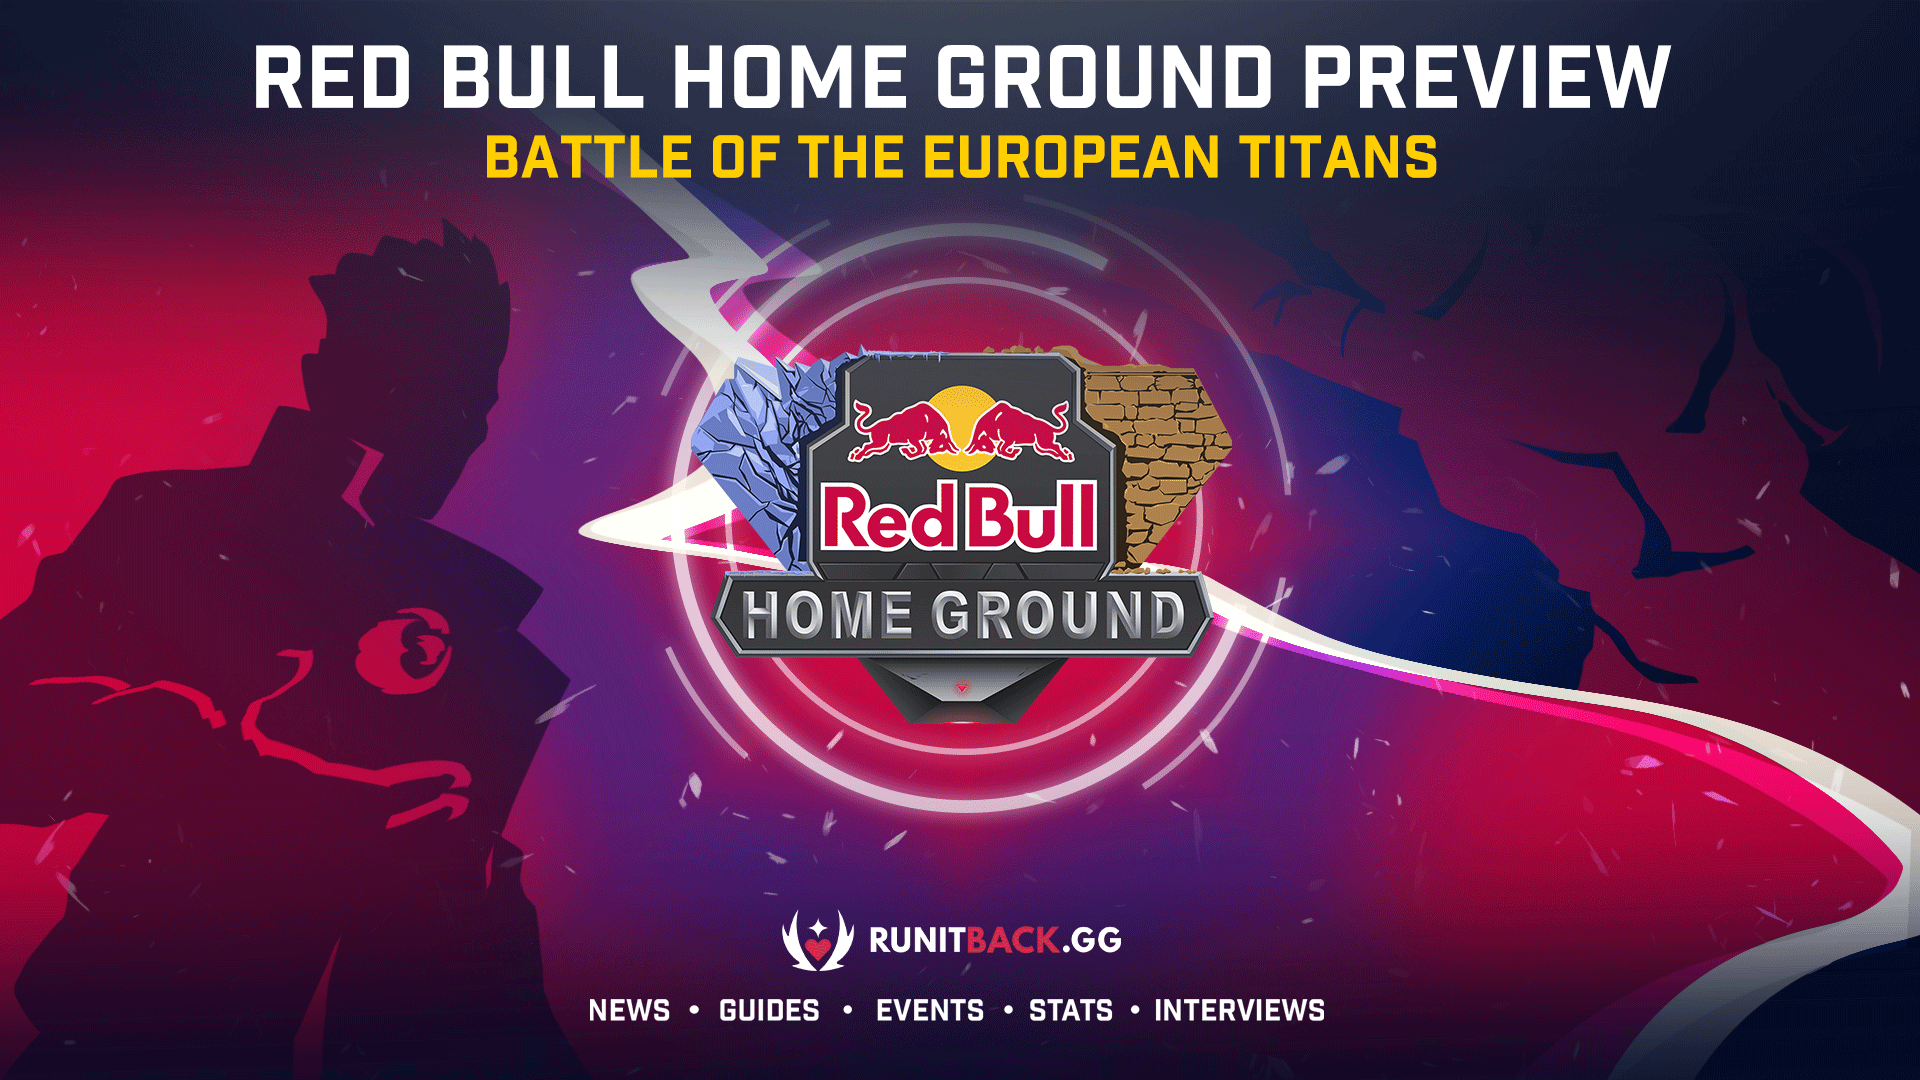 Red Bull Home Ground Preview: Battle of the European Titans